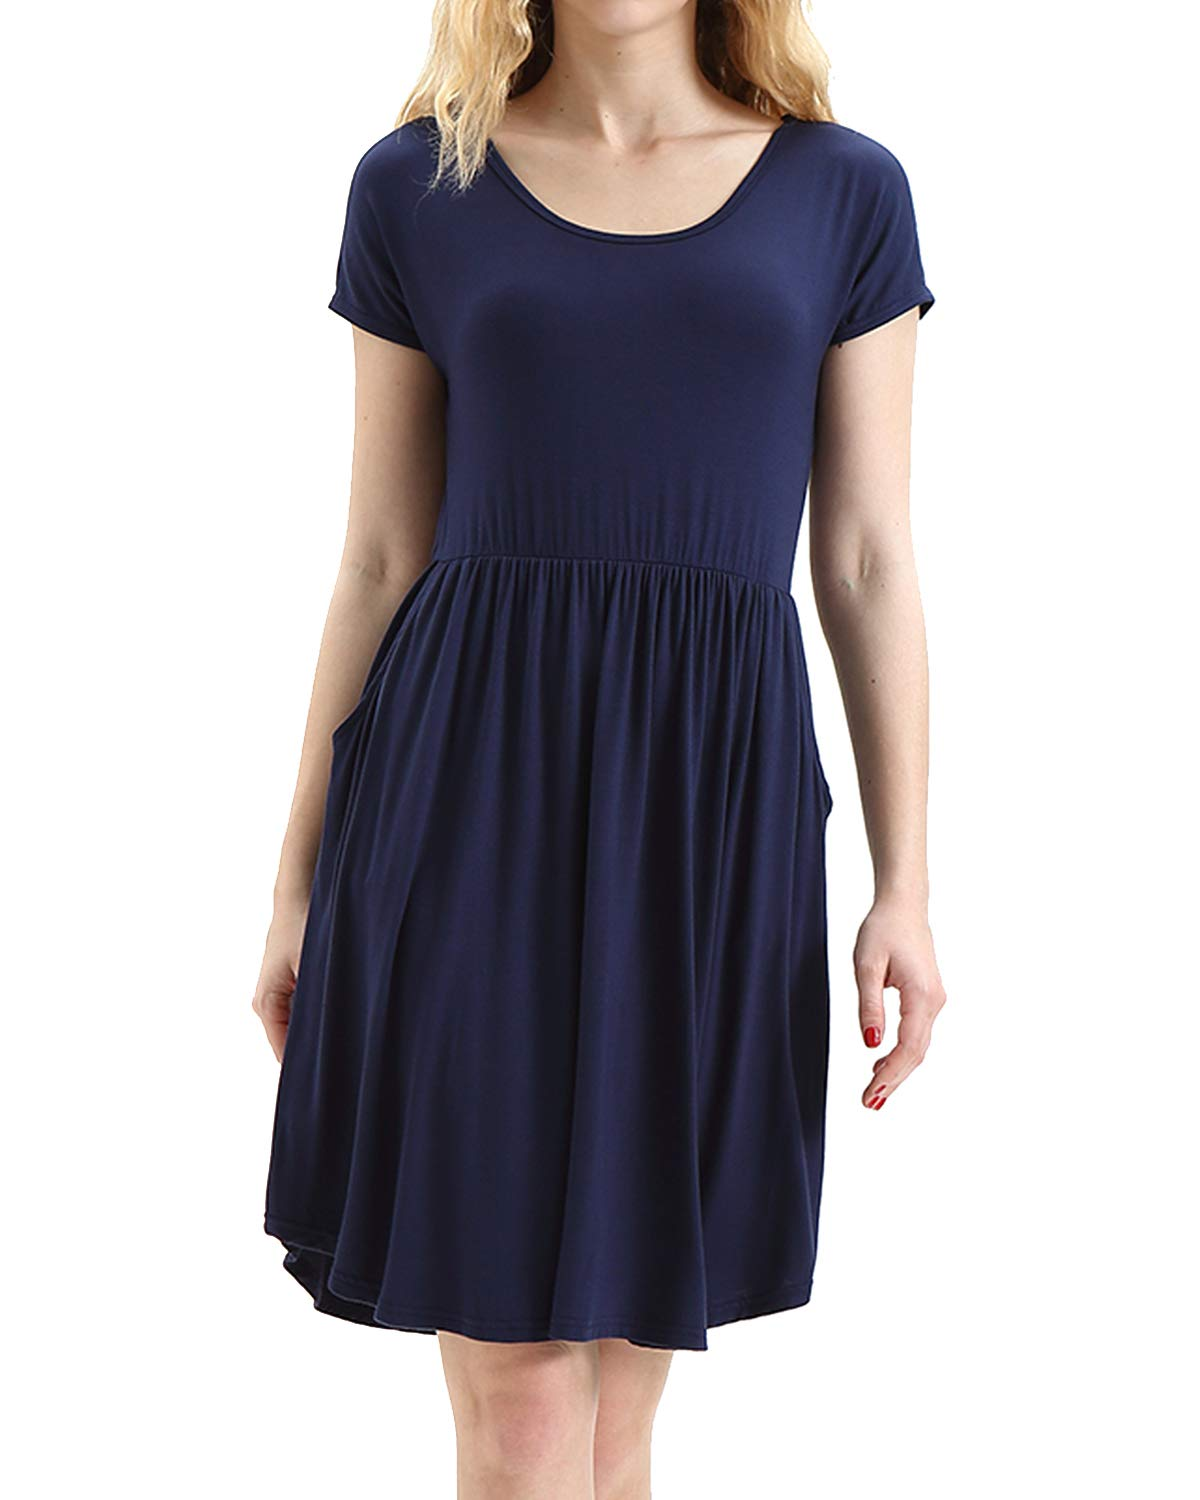 HUALAIMEI Dress Shirts for Women Business Casual, Ladies Scoop Neck Short Sleeve Midi Dresses Knee Length Comfy Long Tunic with Pockets Navy Blue L